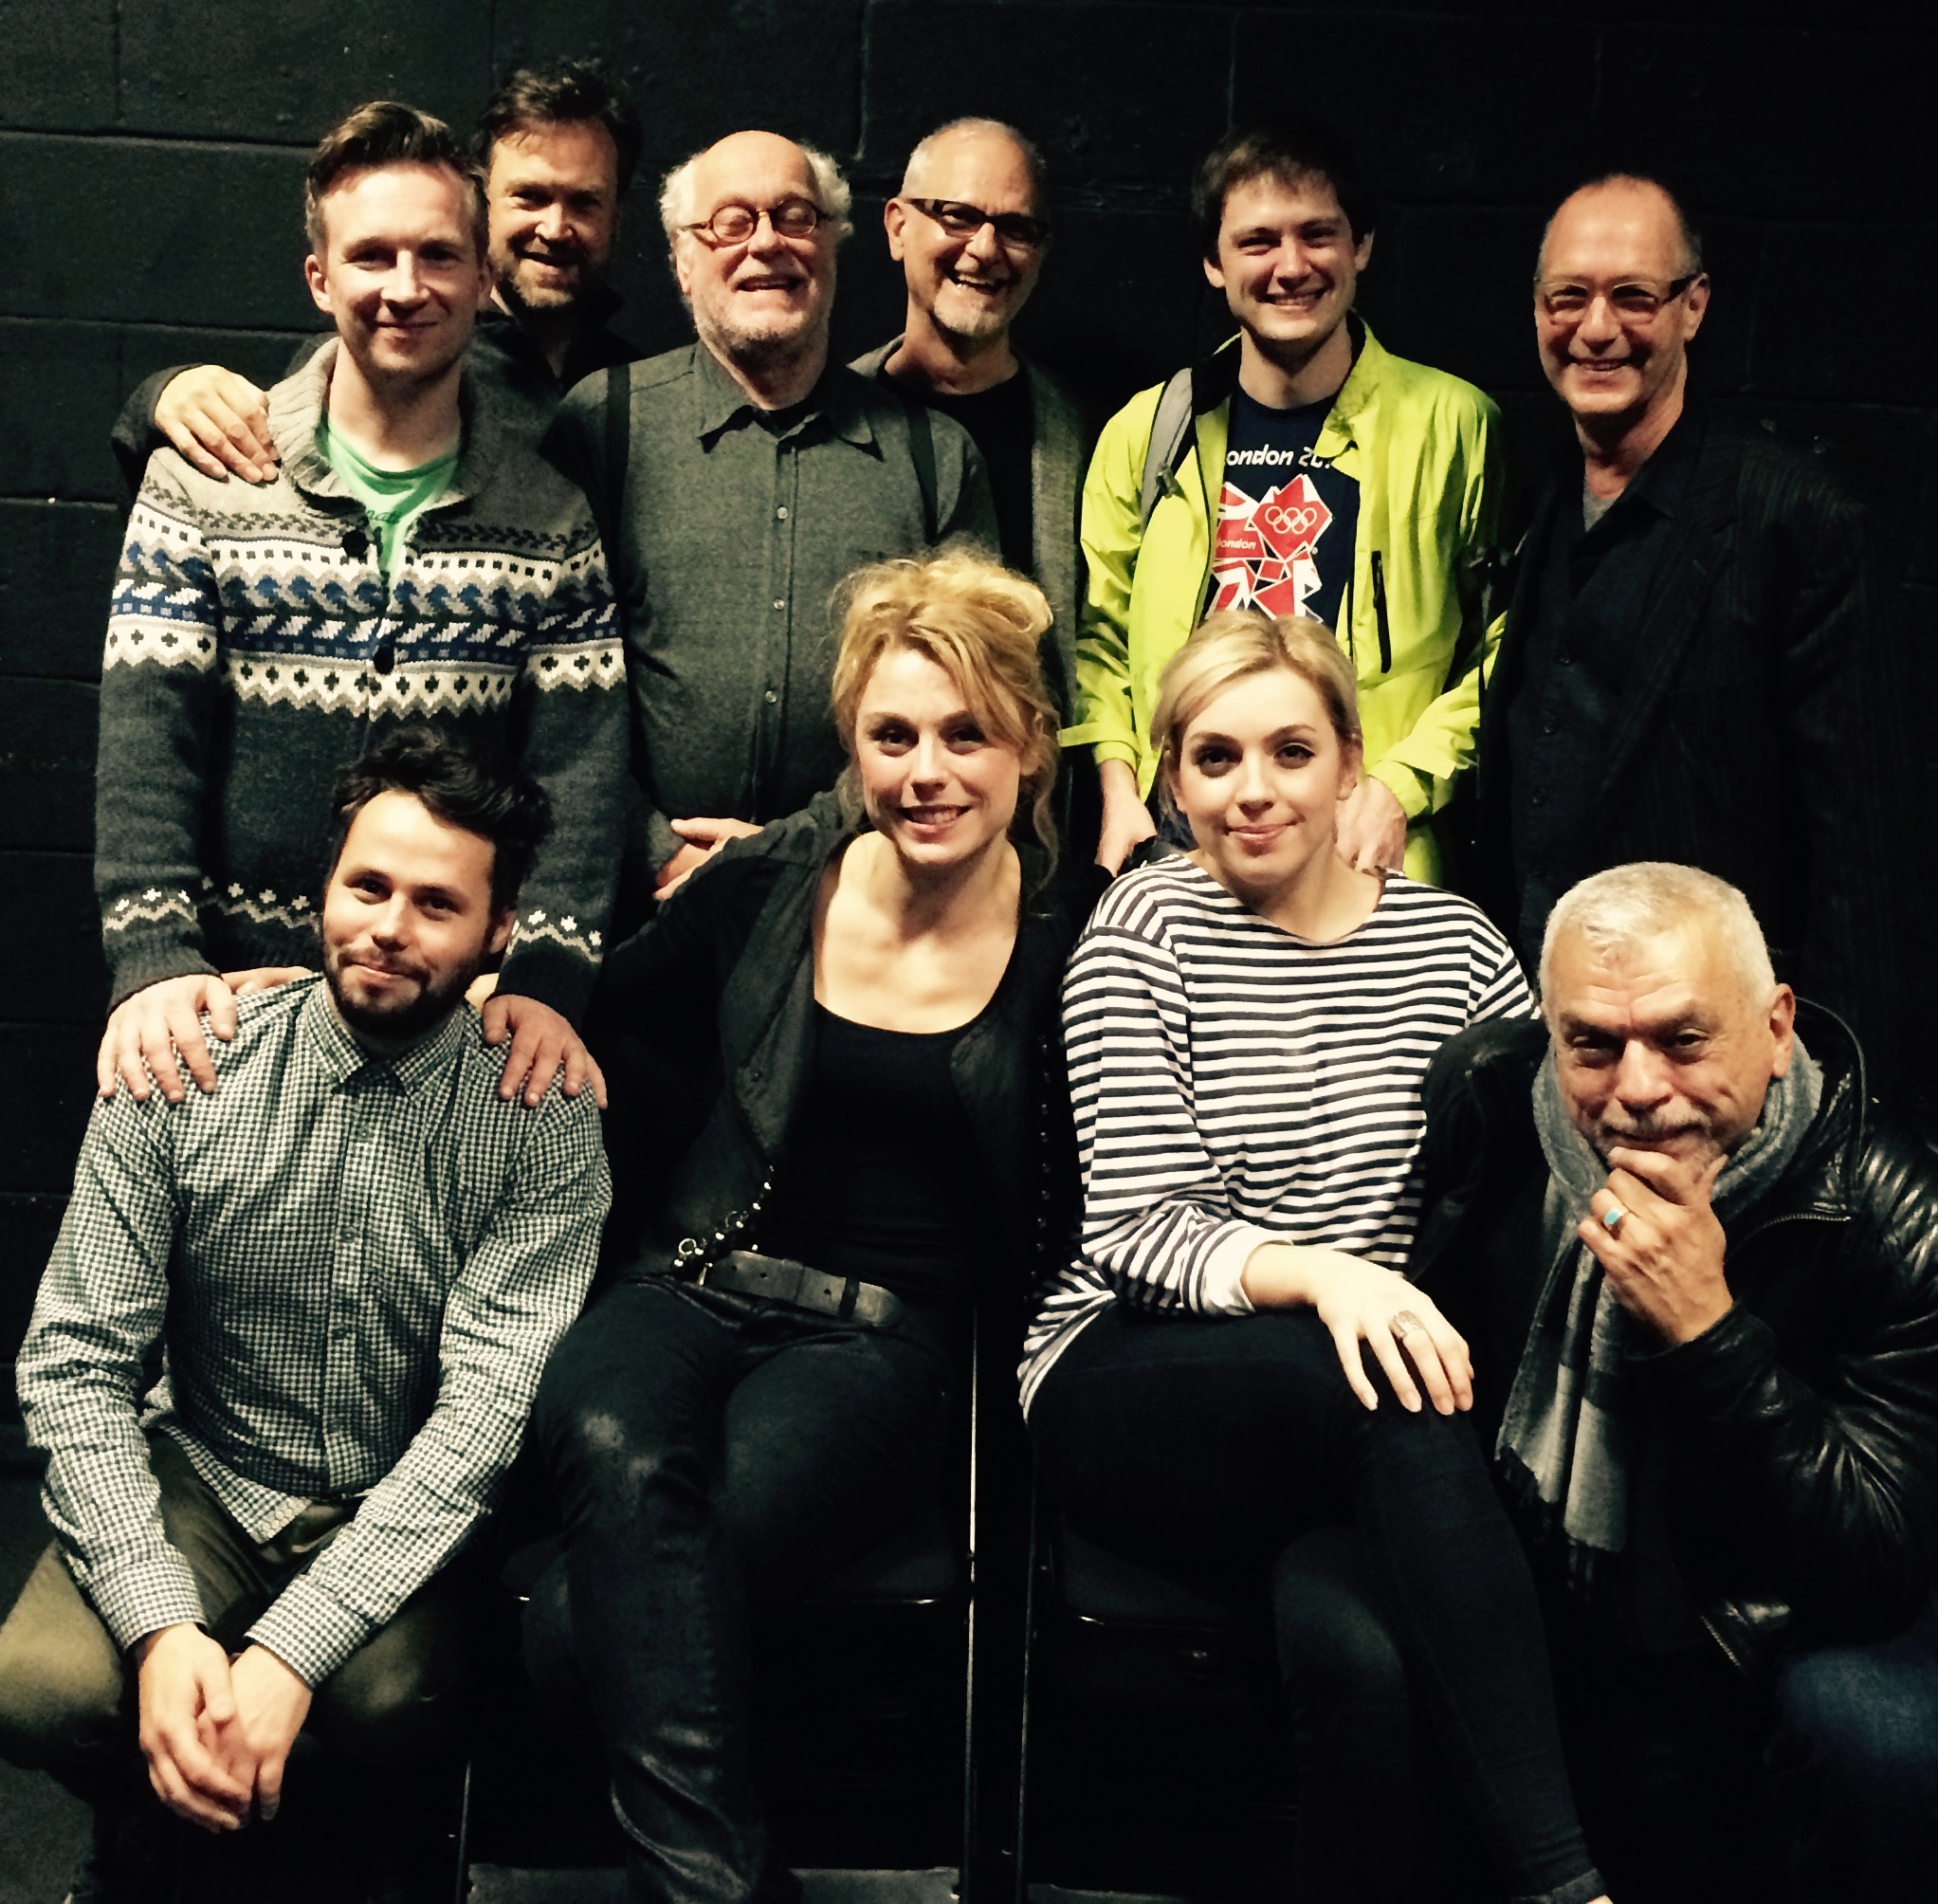 The Cast & Creative Team on stage after our London Showcase, 2015